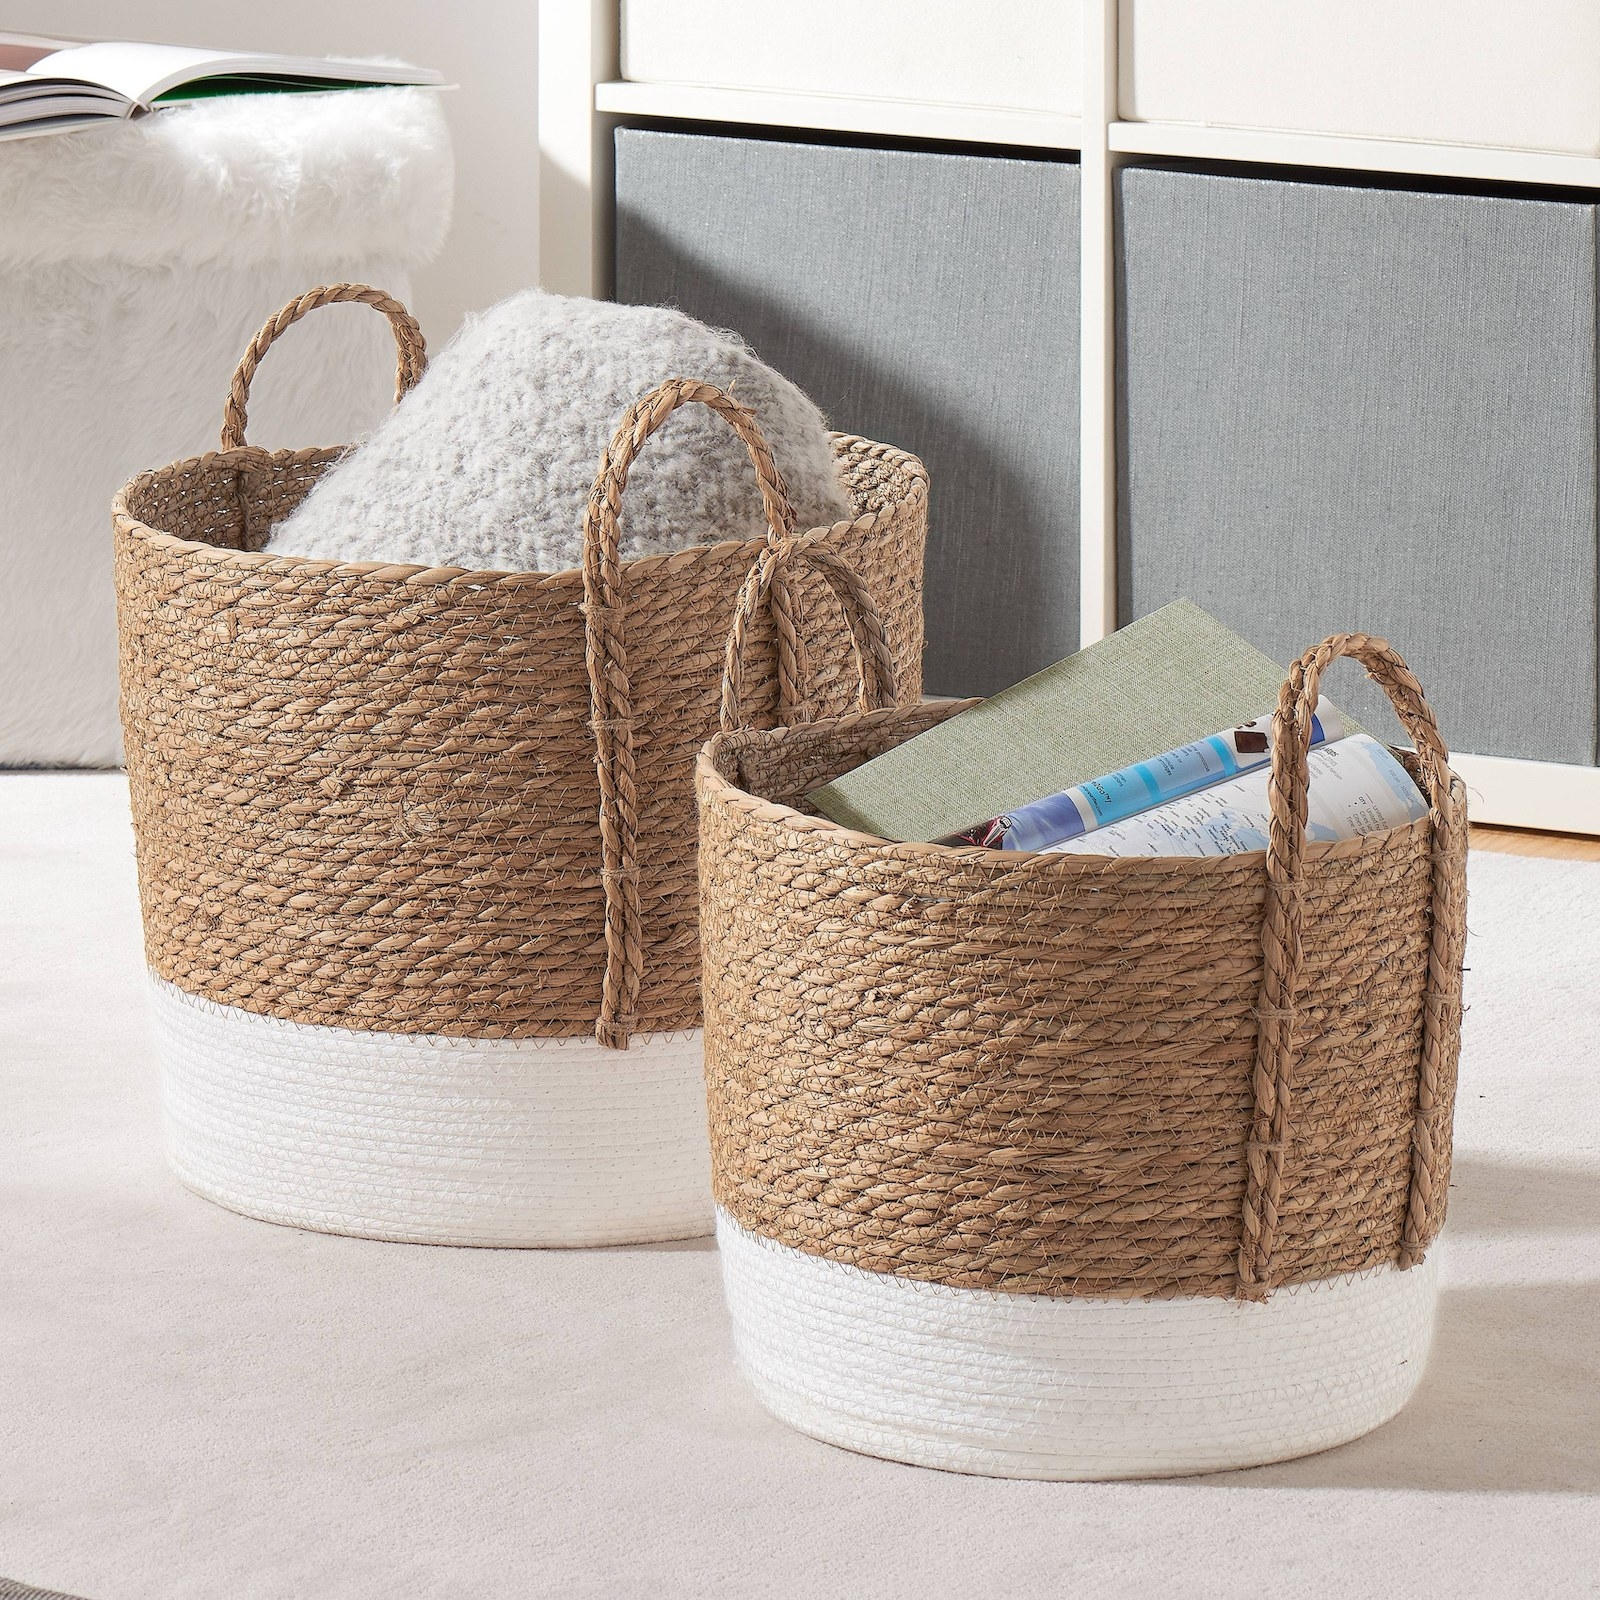 The two baskets with white bottoms and natural tops holding extra blankets and books